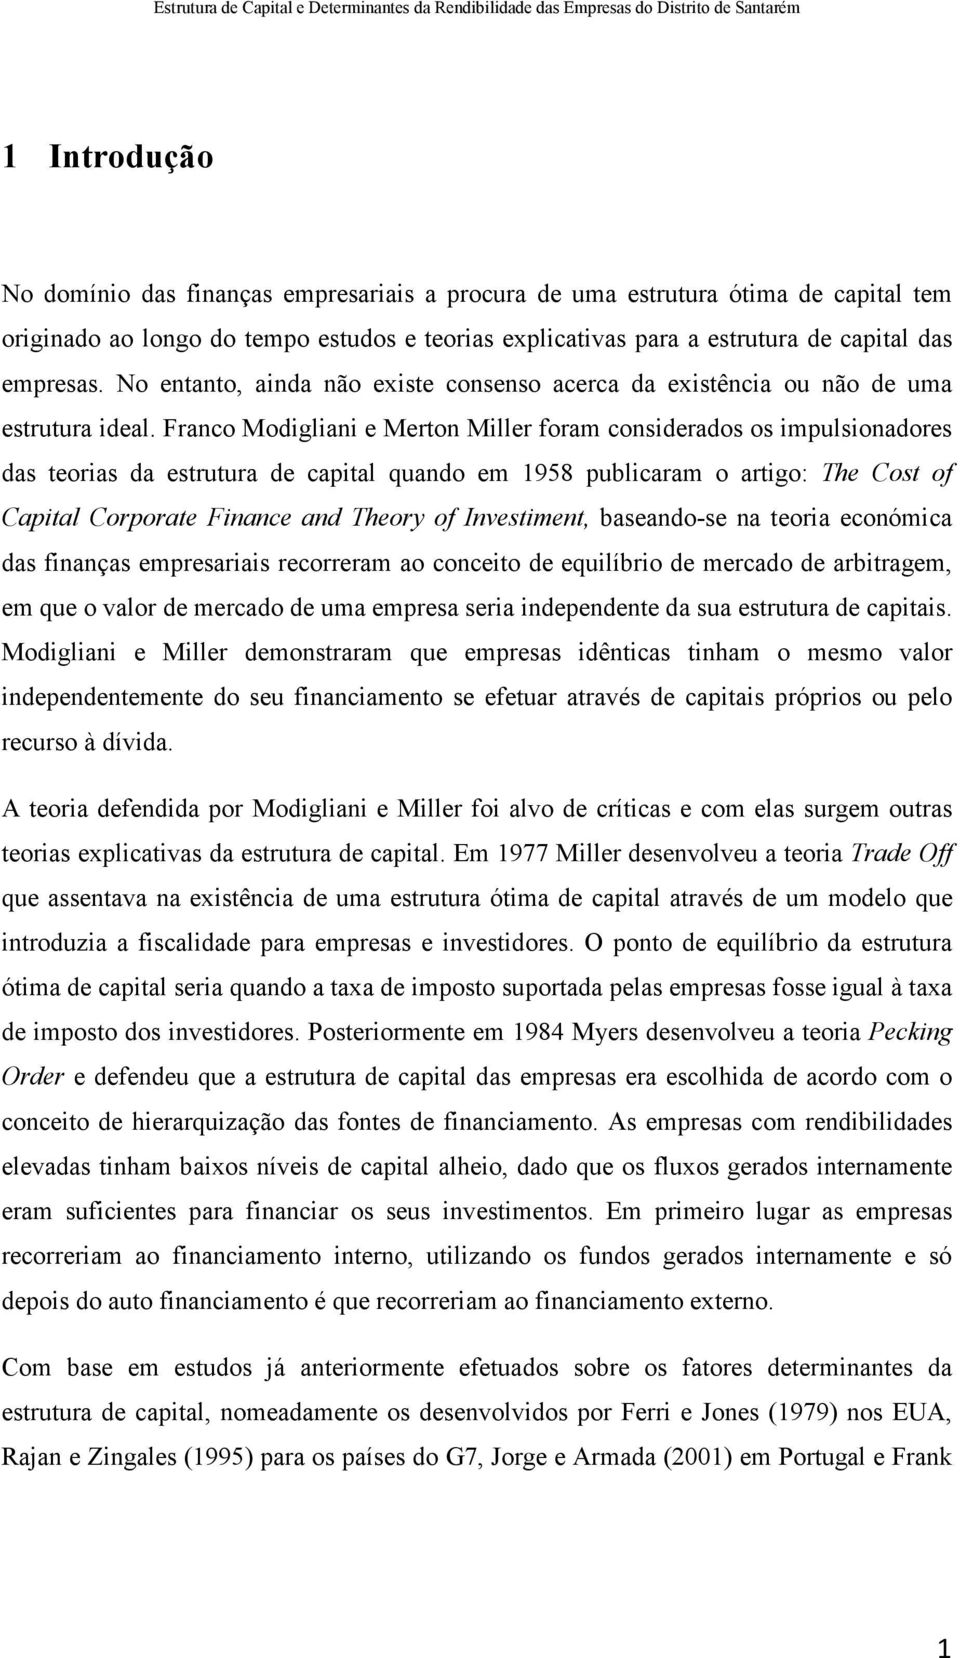 Franco Modigliani e Merton Miller foram considerados os impulsionadores das teorias da estrutura de capital quando em 1958 publicaram o artigo: The Cost of Capital Corporate Finance and Theory of